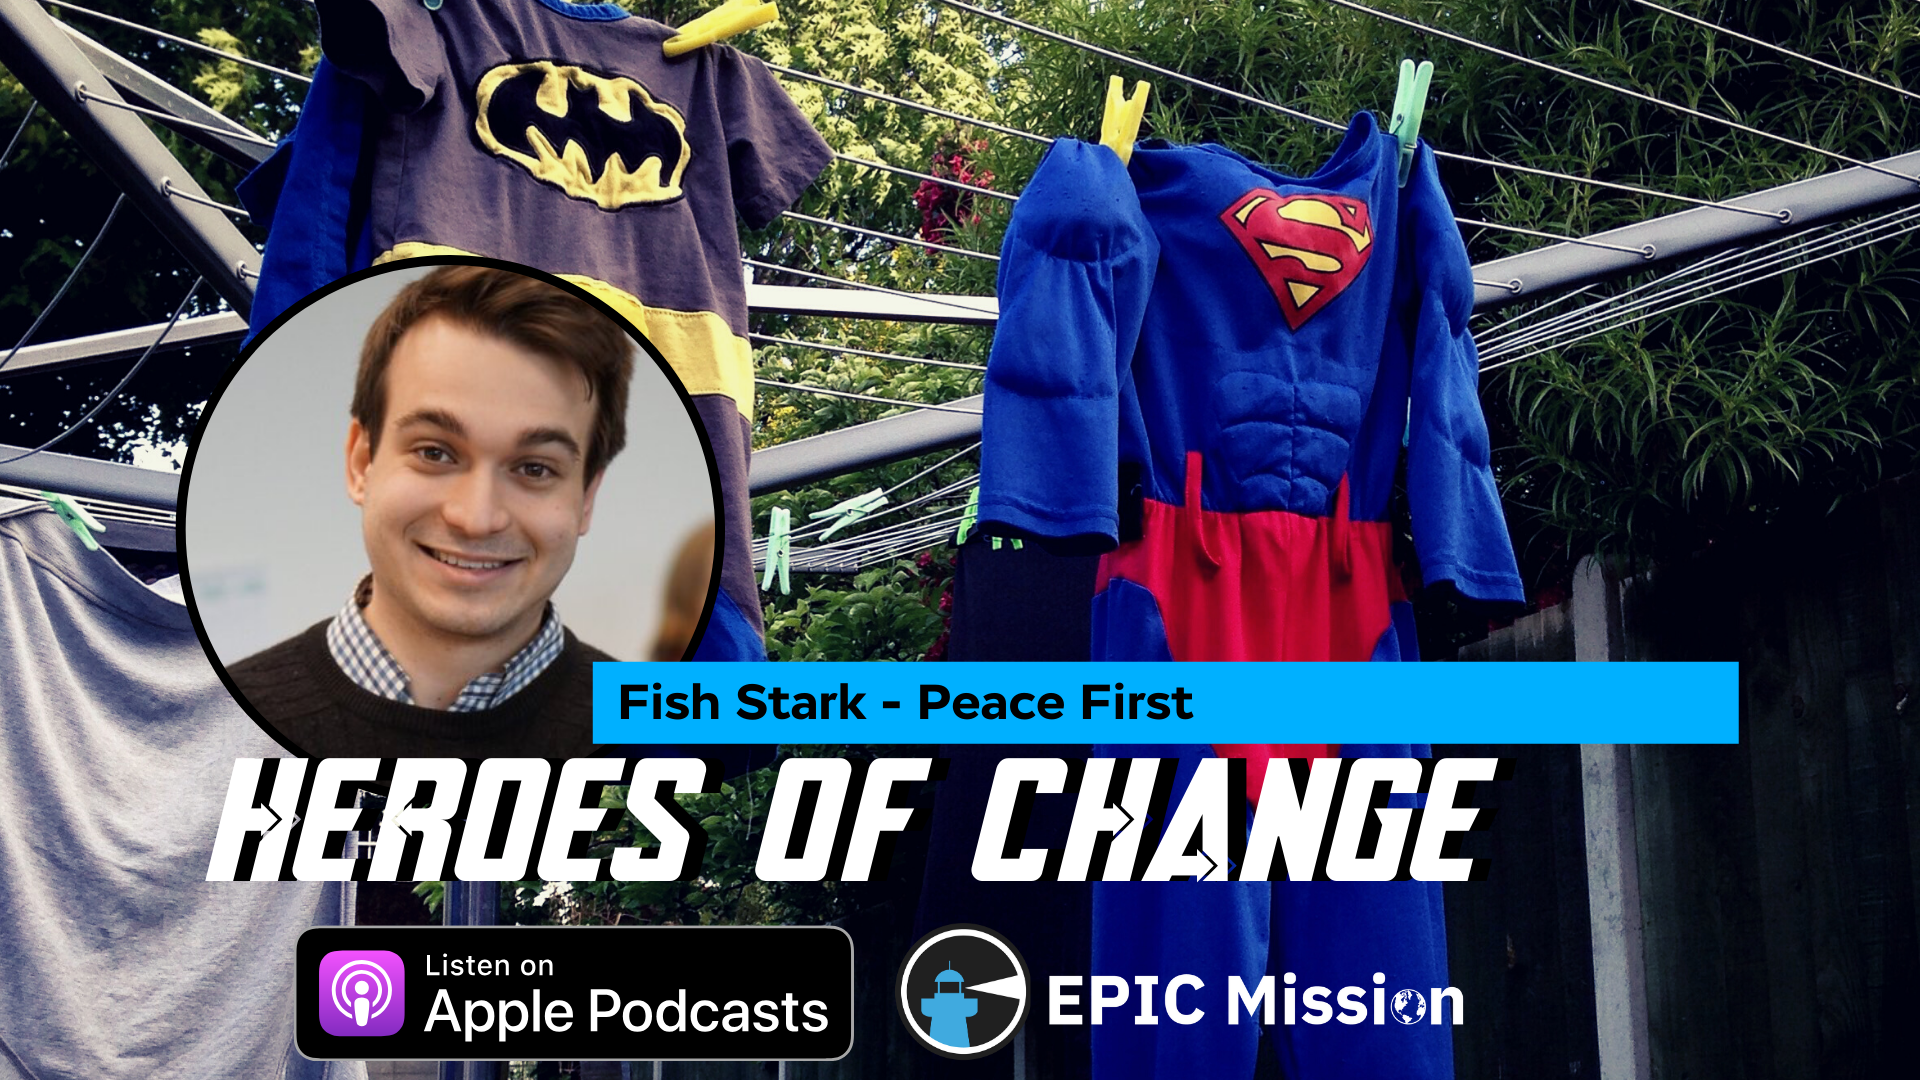 Heroes of Change: Fish Stark of Peace First - EPIC Mission